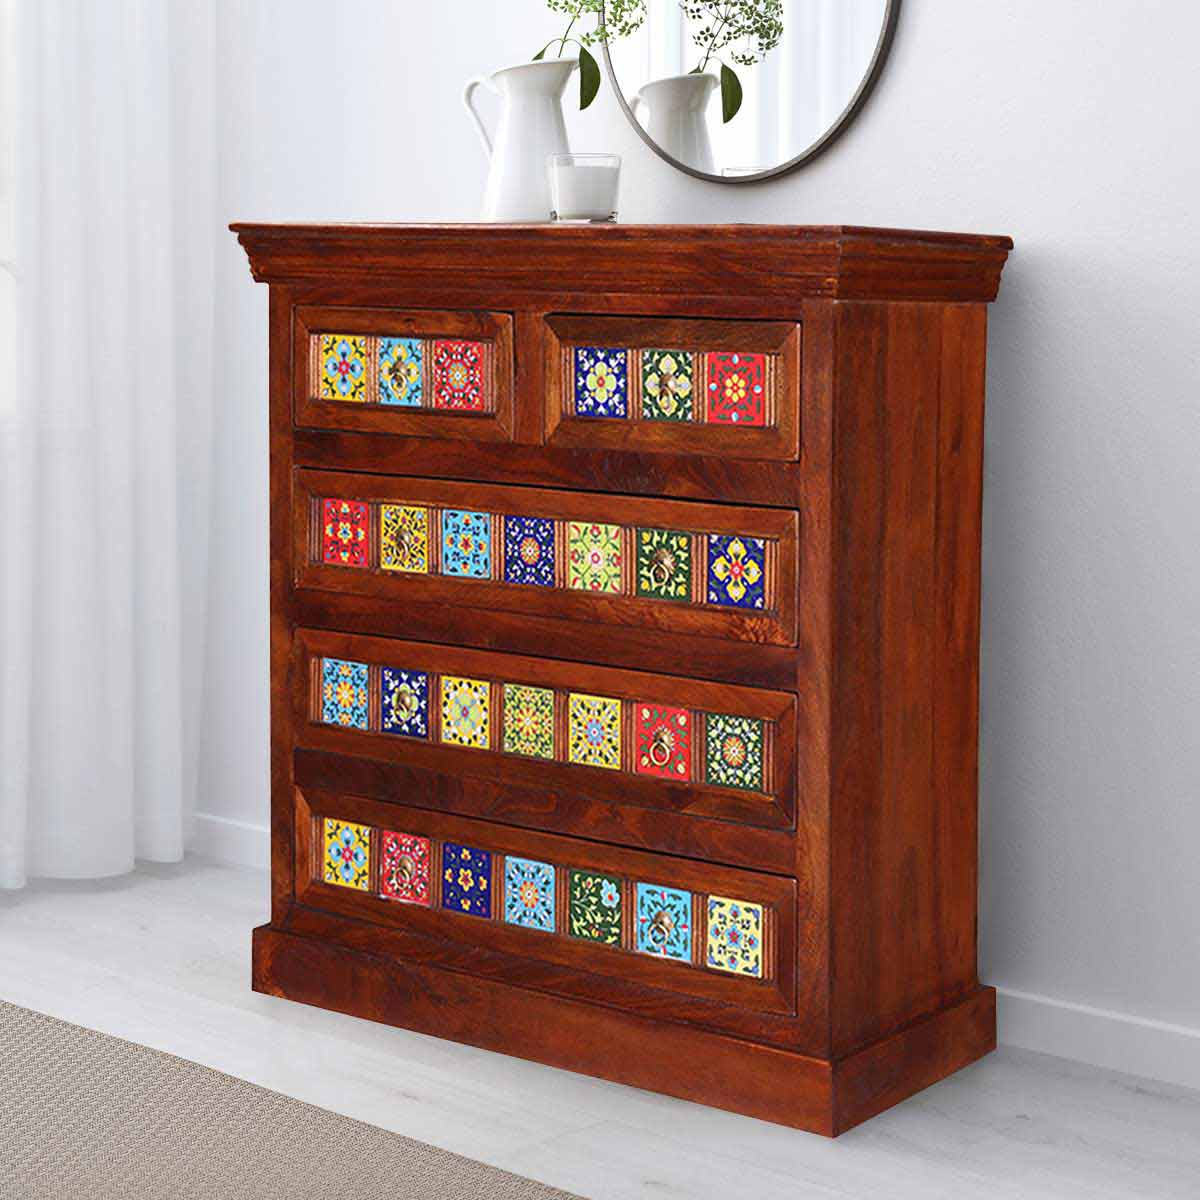 Picture of: Chest with Drawer Design